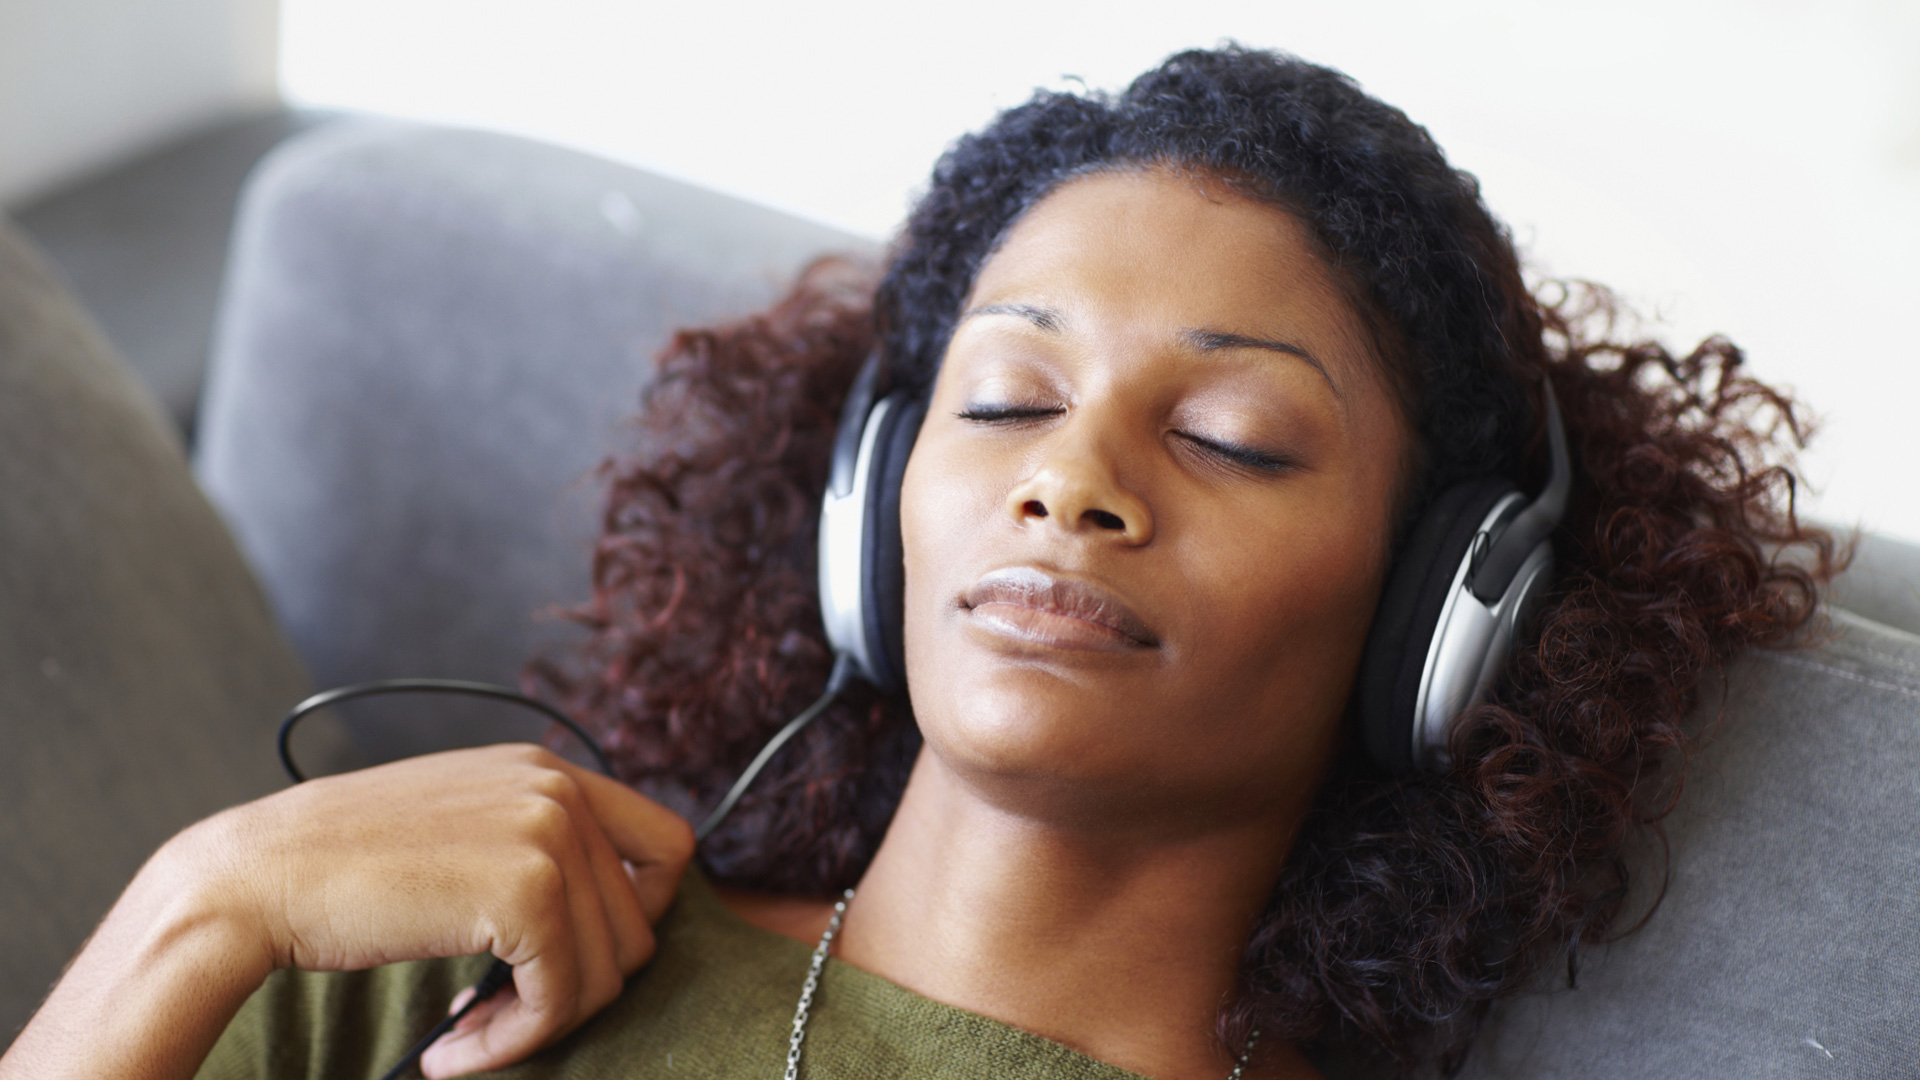 Woman wearing headphones and sleeping